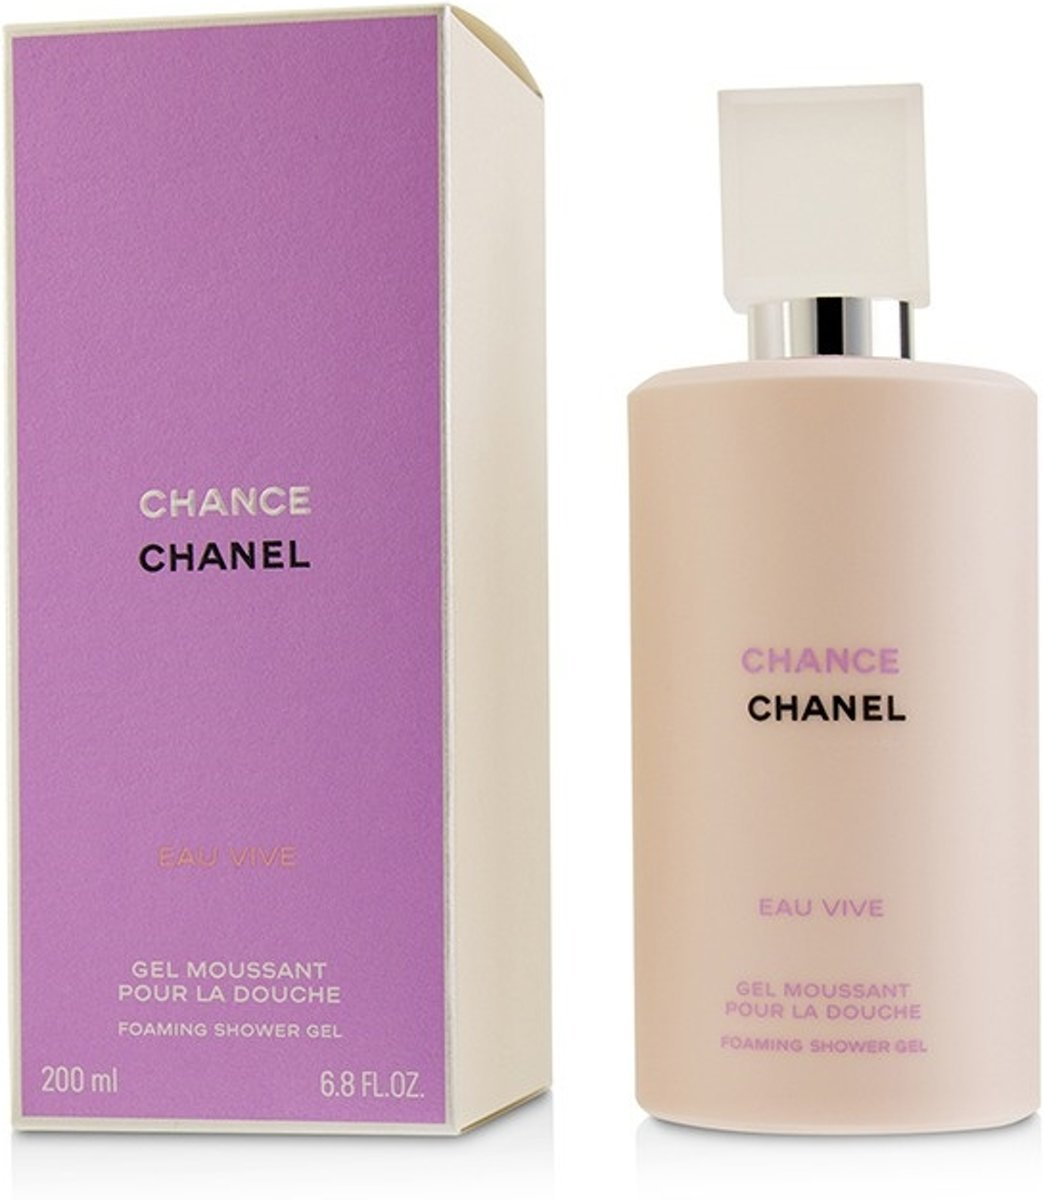 Chanel Chance Eau Vive Shower Gel 200ml